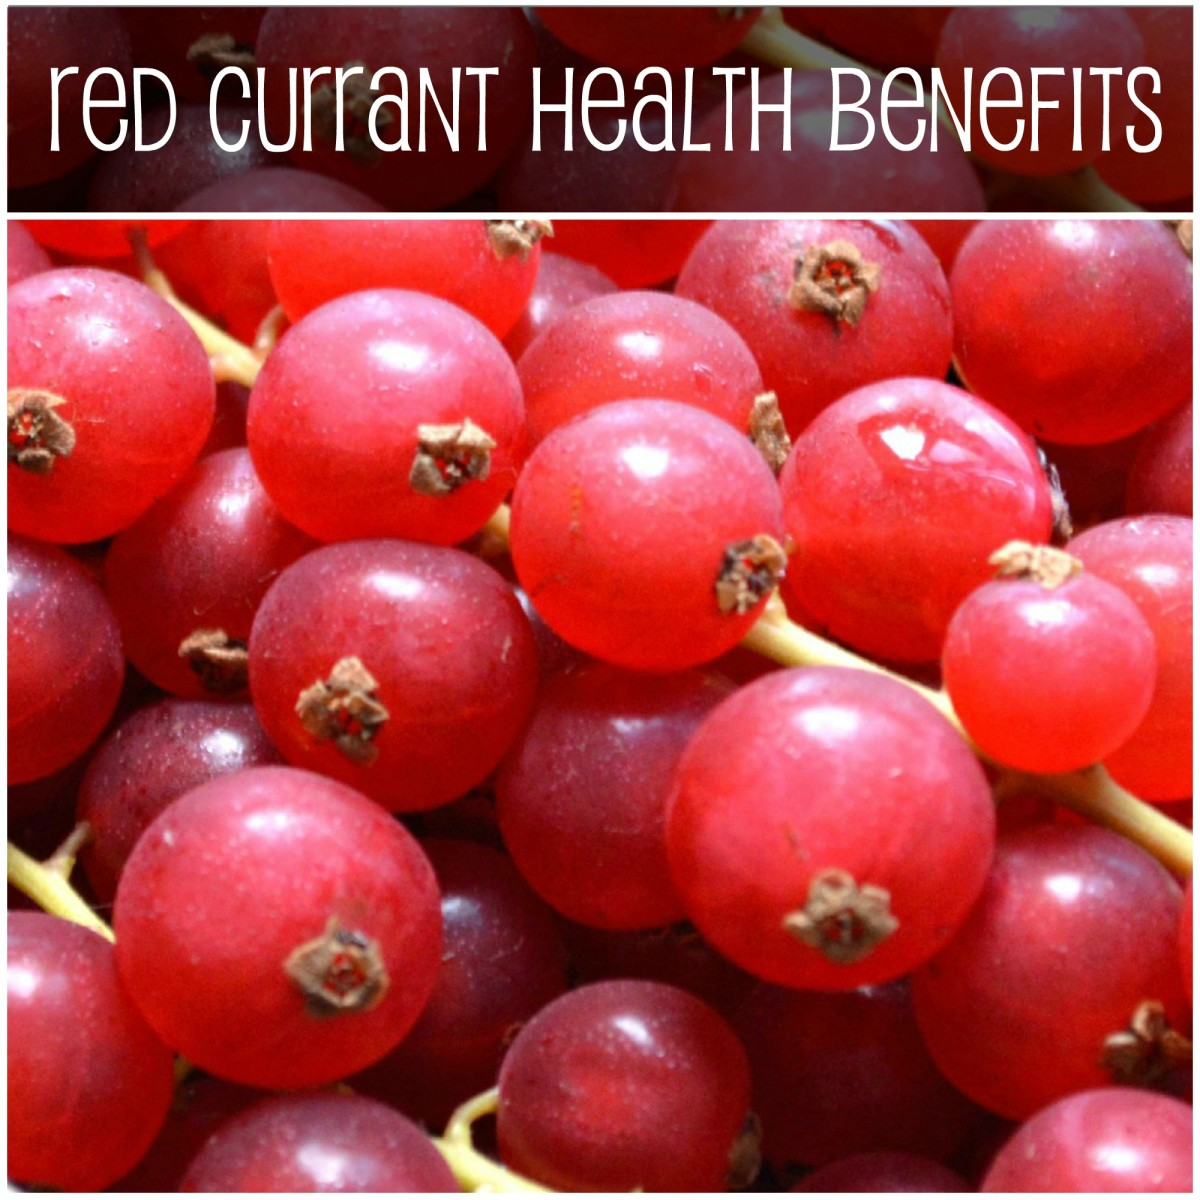 Red Currant Health Benefits | A Tart Berry for Health